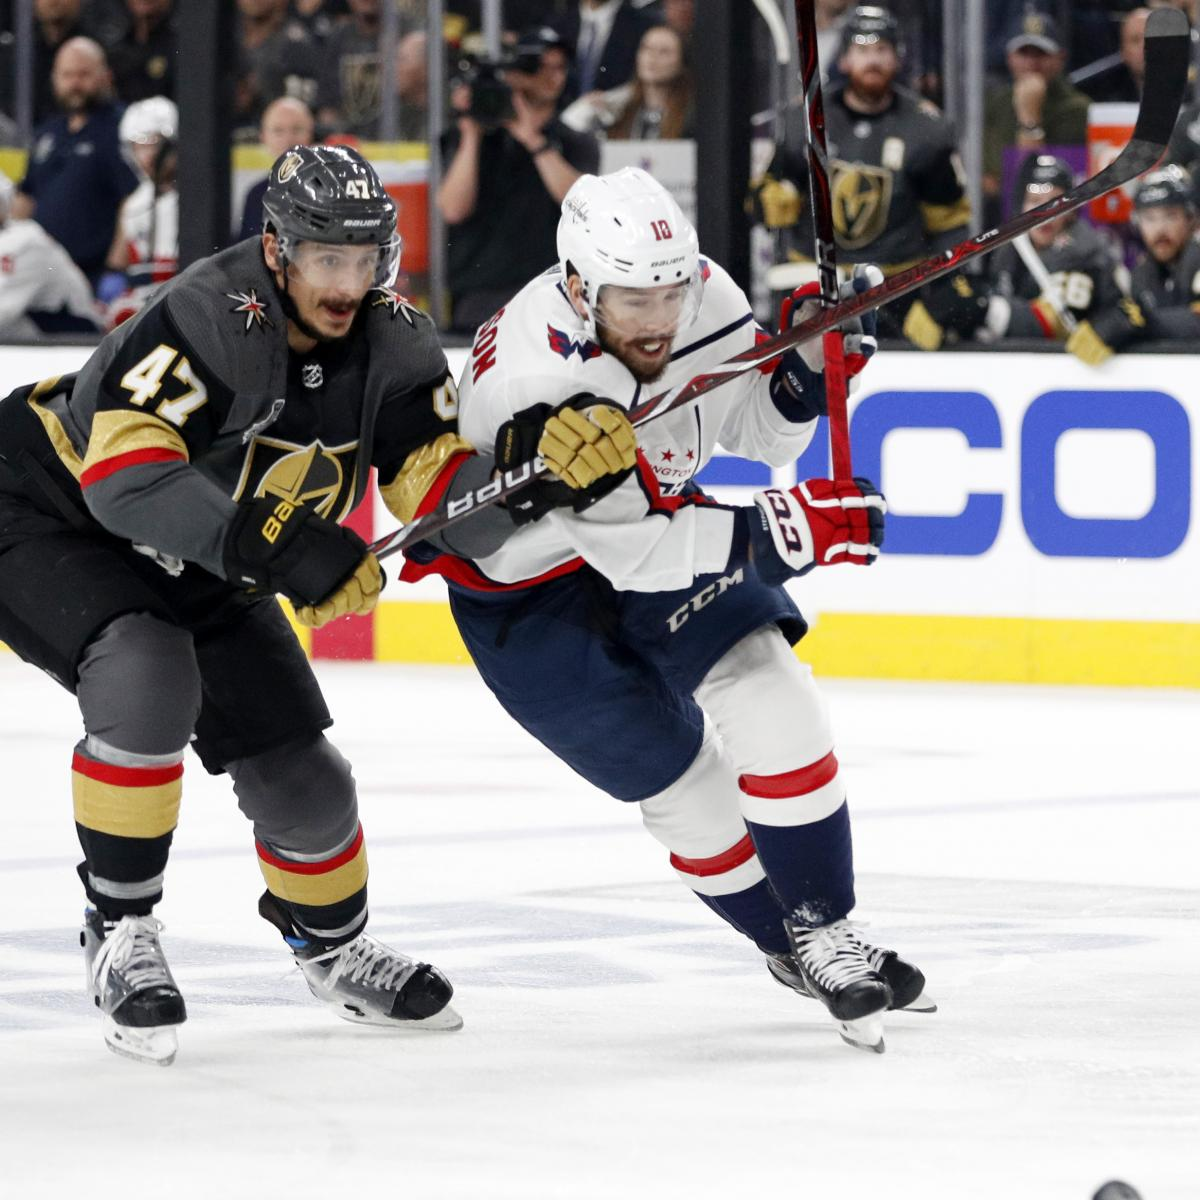 stanley cup 2018: nbcsn tv schedule, start time for golden knights